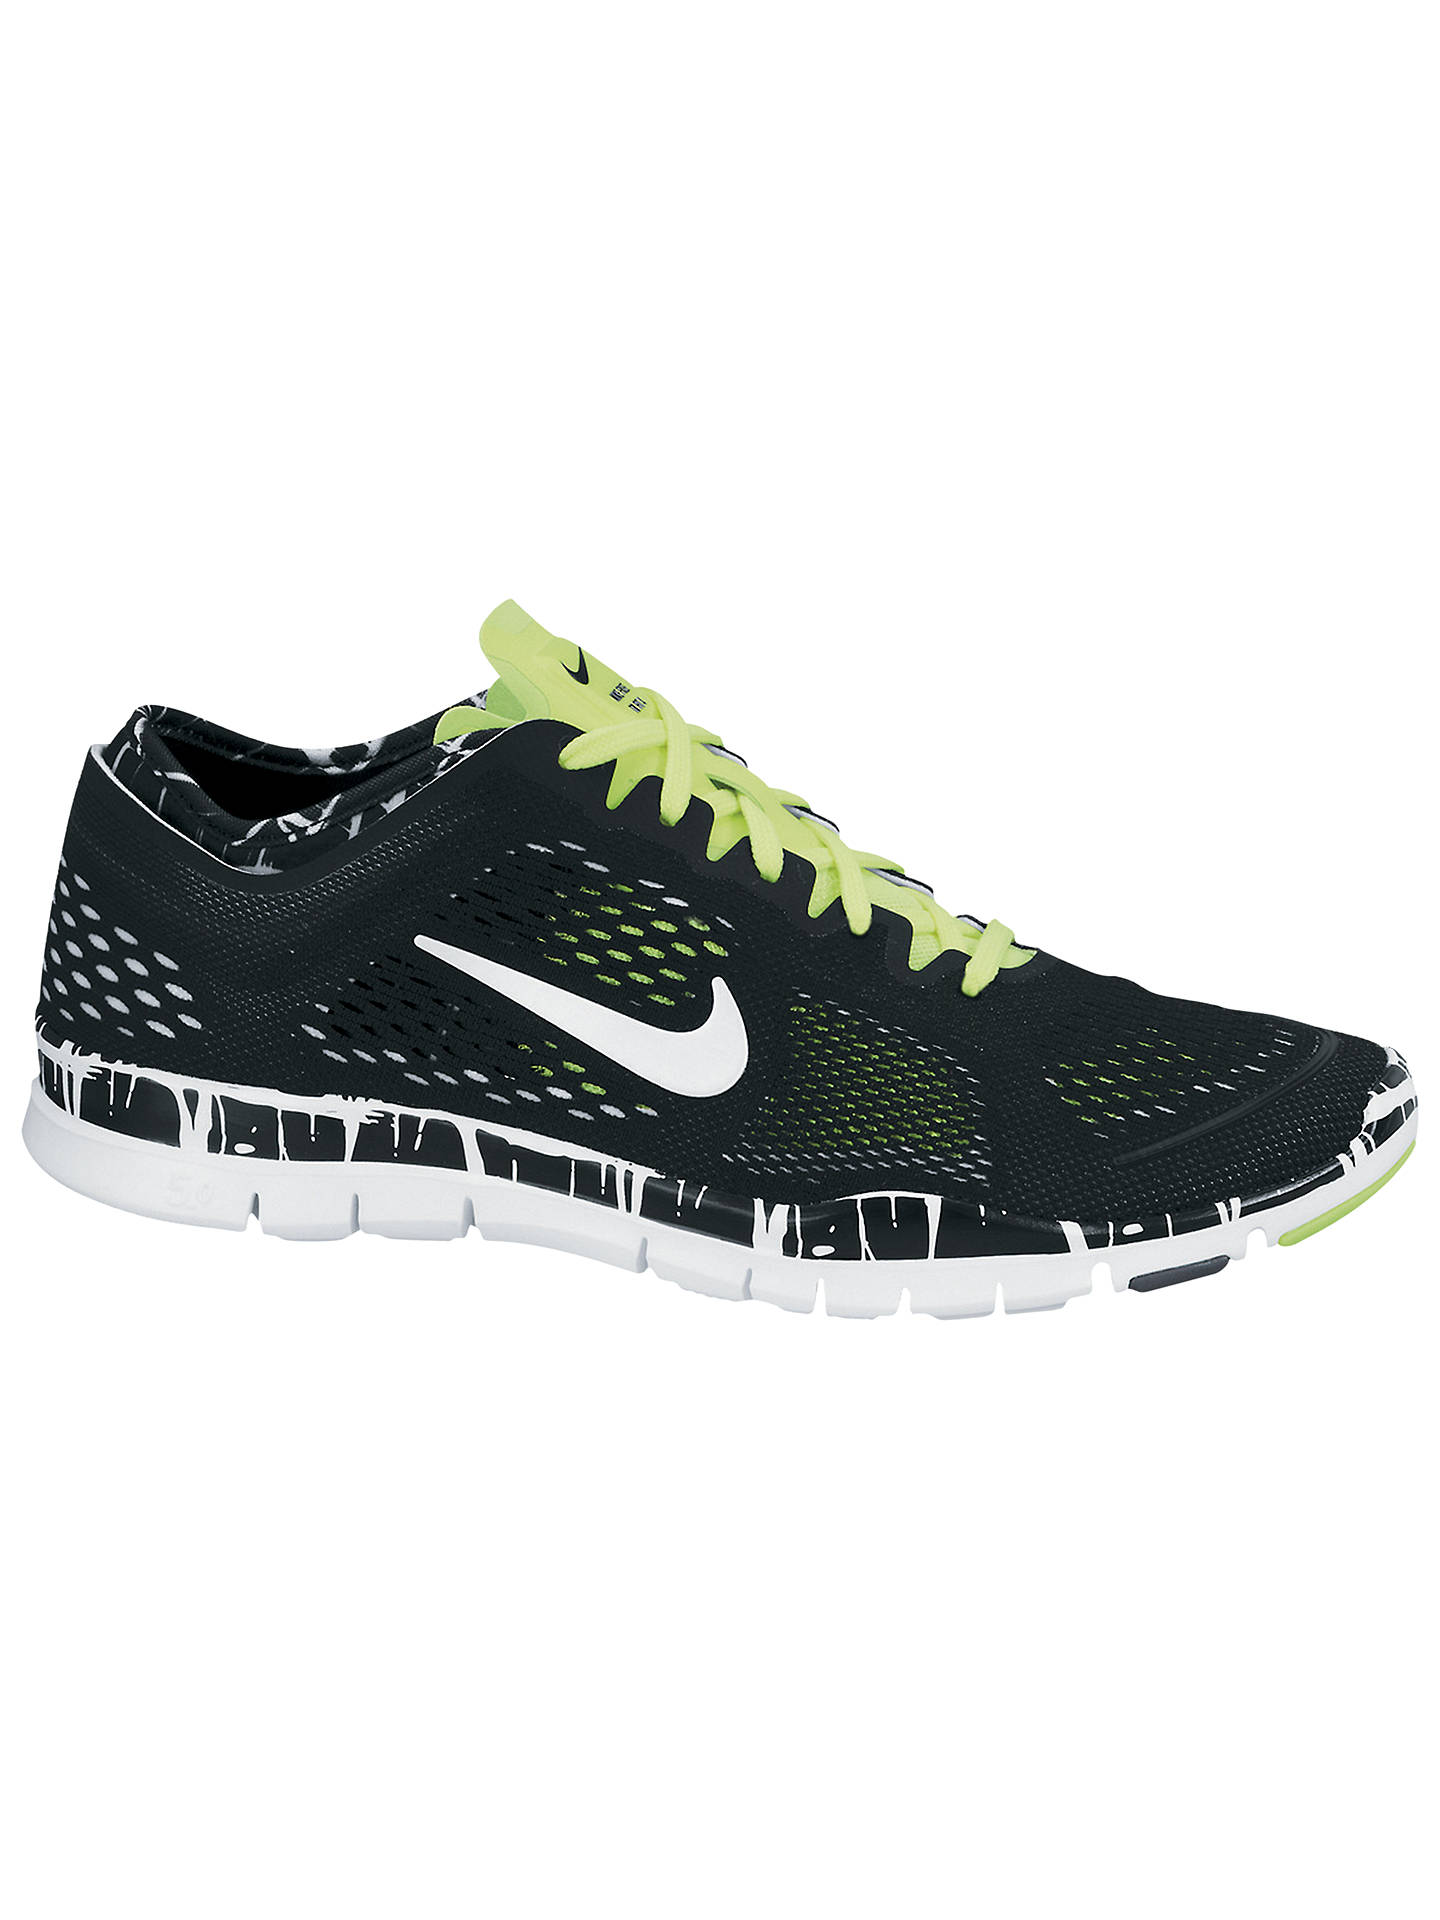 first rate 2410e 633bf Nike Women's Free 5.0 TR Fit 4 Cross Trainers, Black/White ...